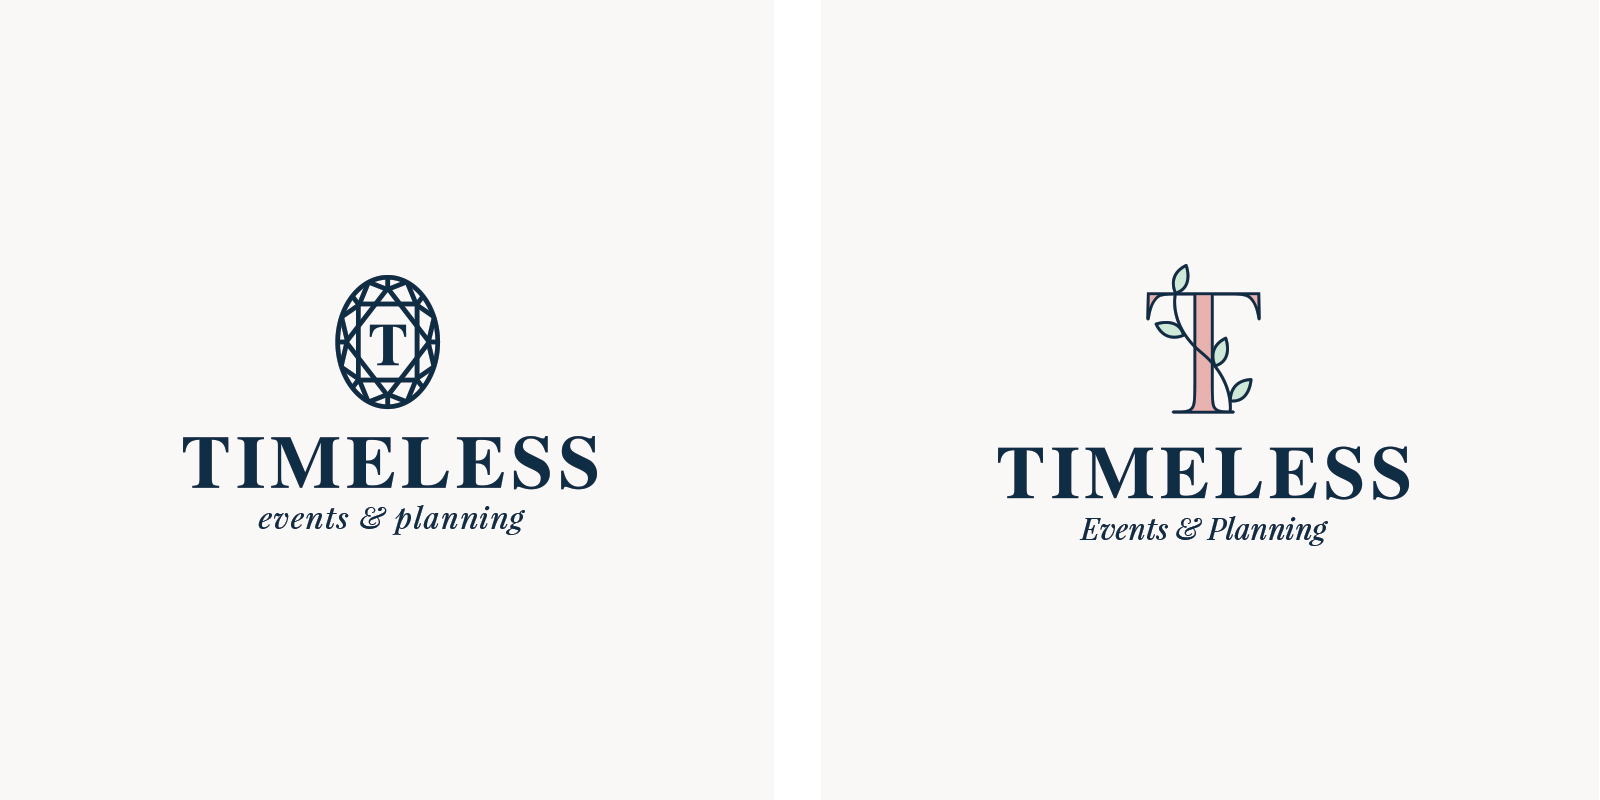 Timeless Events & Planning - alternate logo designs